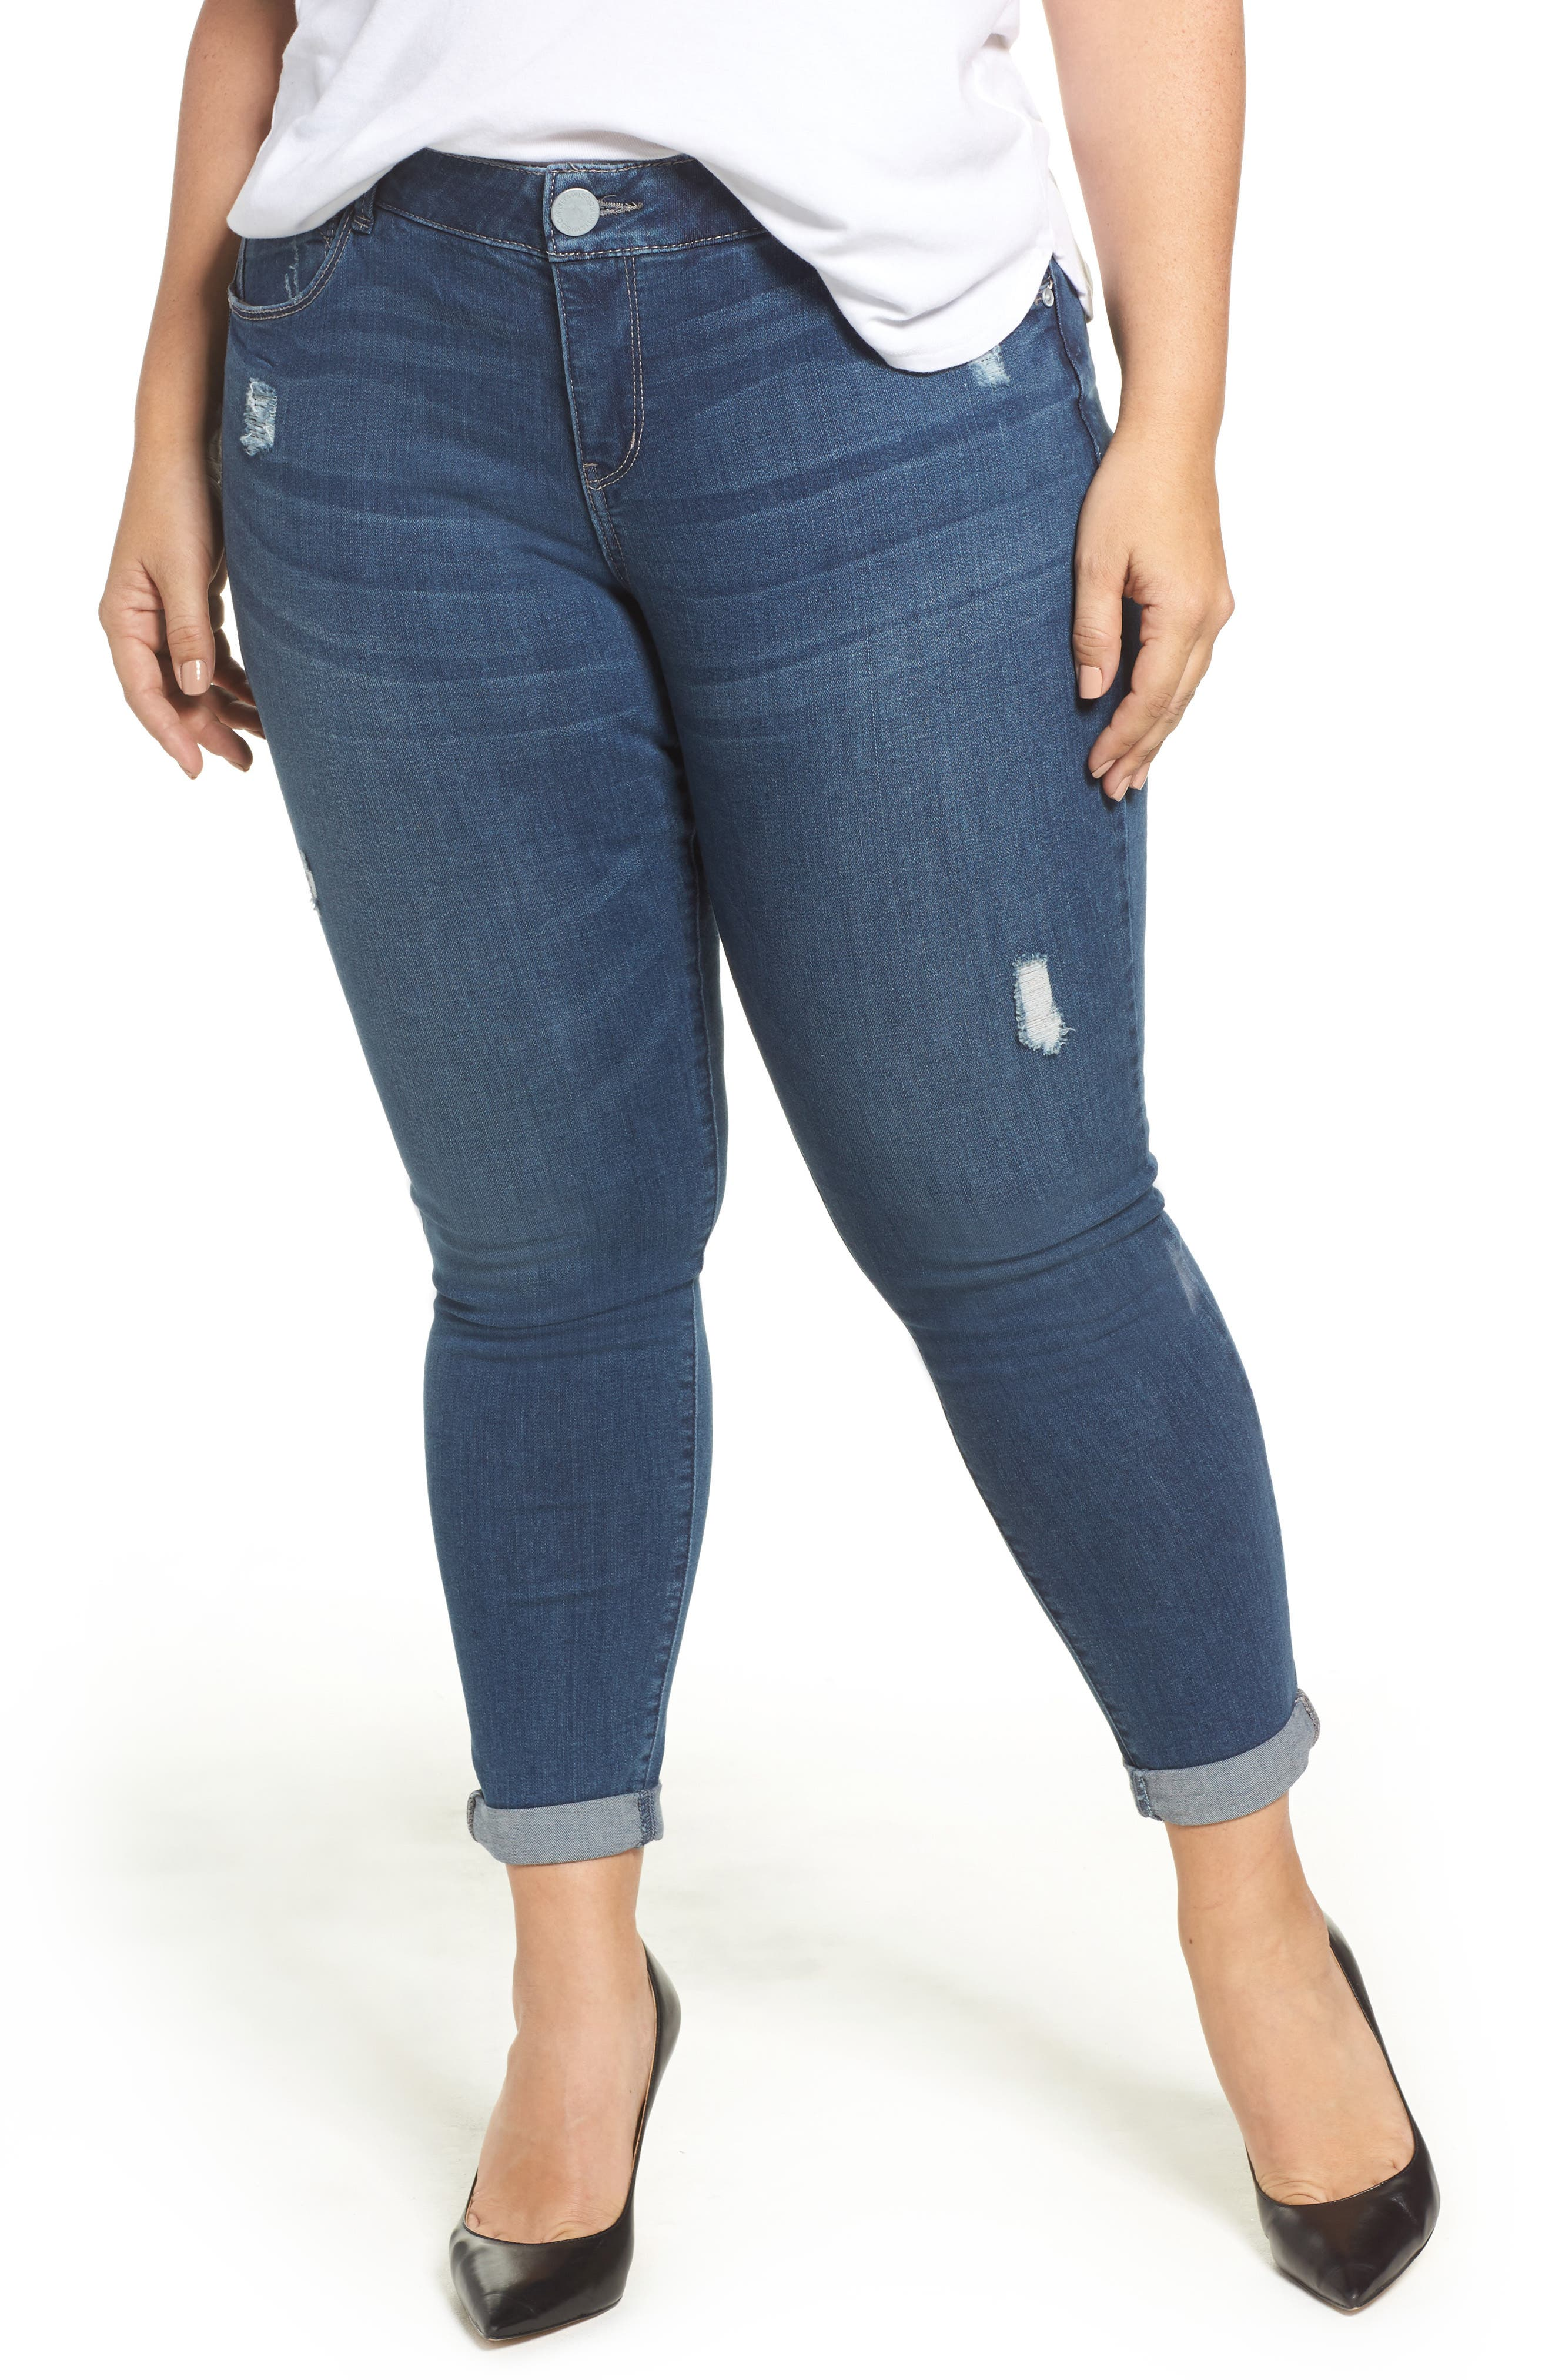 Main Image - Wit & Wisdom Ab-solution Boyfriend Ankle Jeans (Plus Size) (Nordstrom Exclusive)